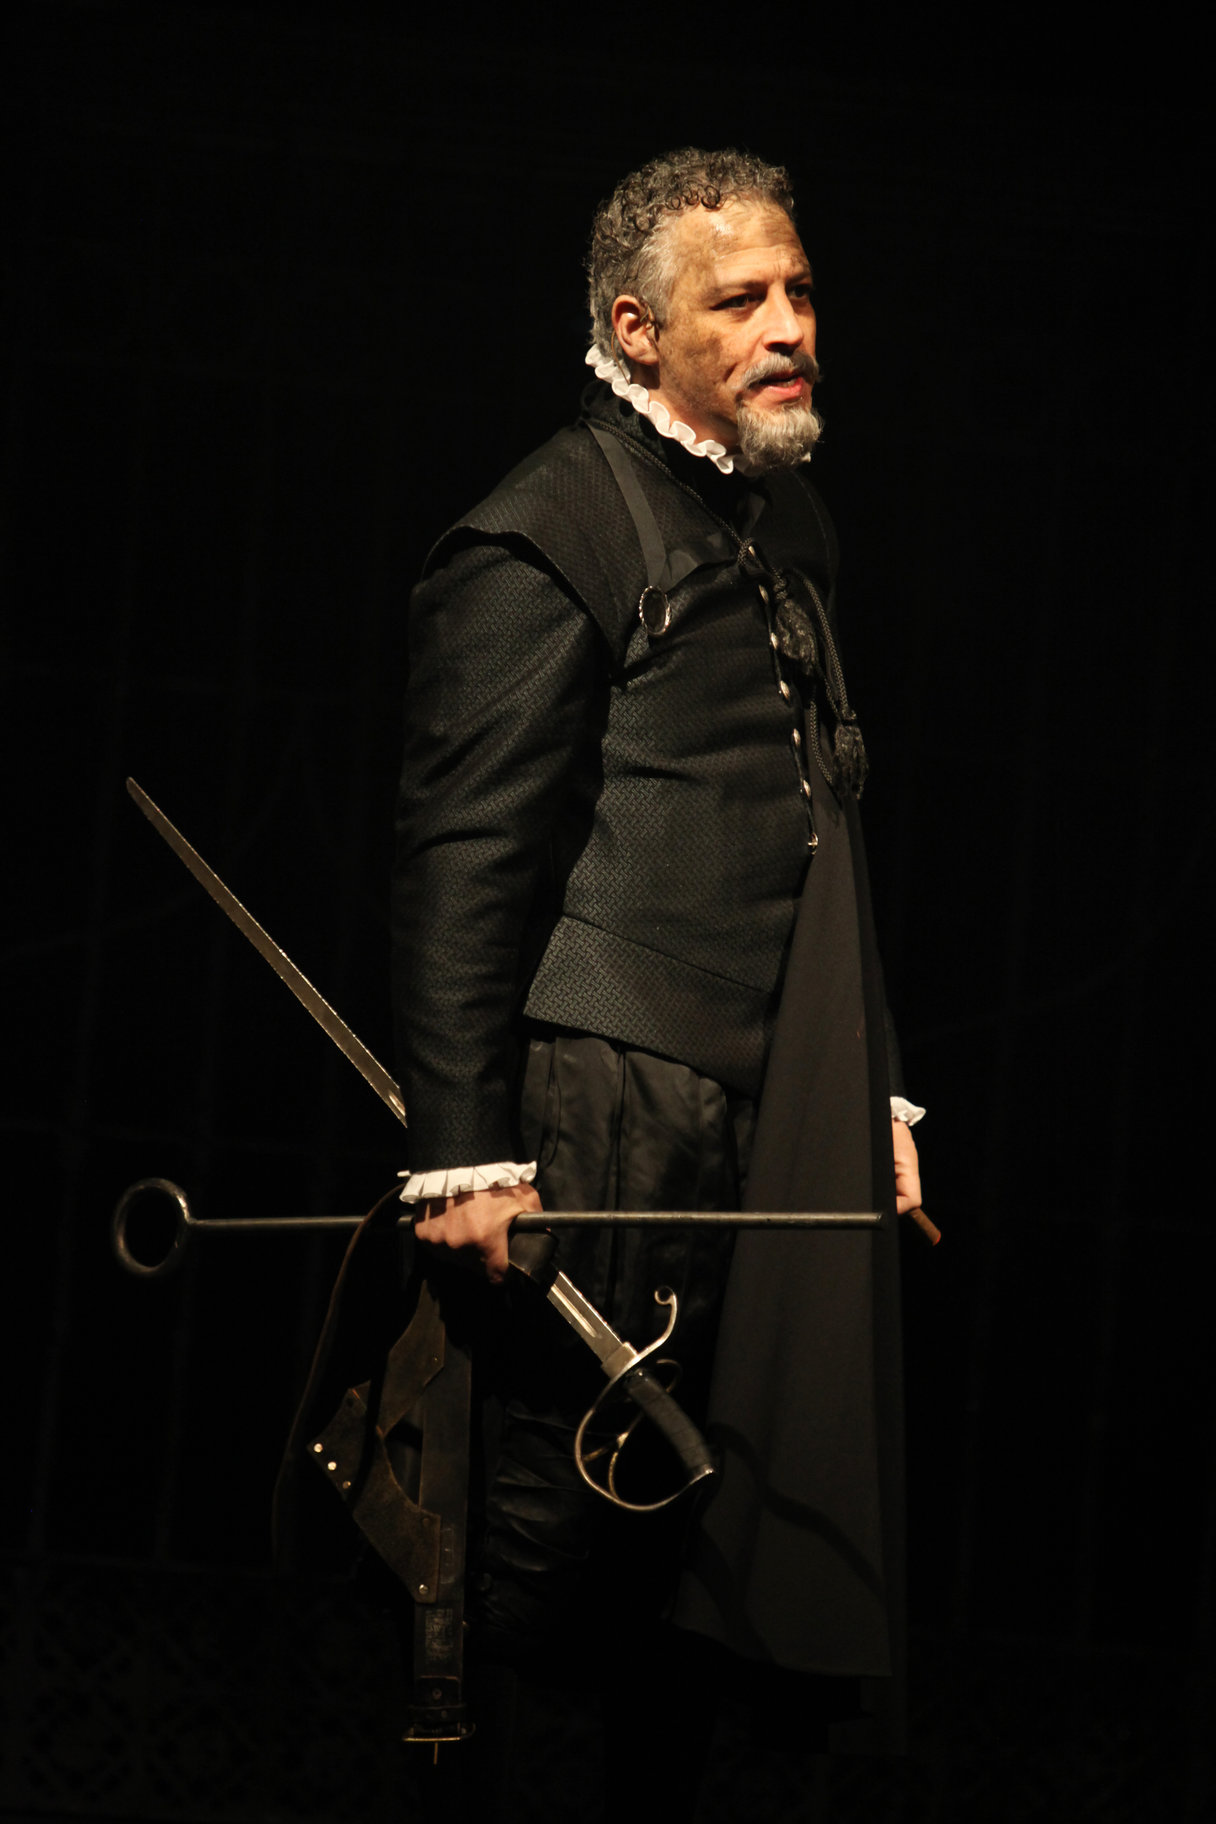 Lord Montague in black with swords.